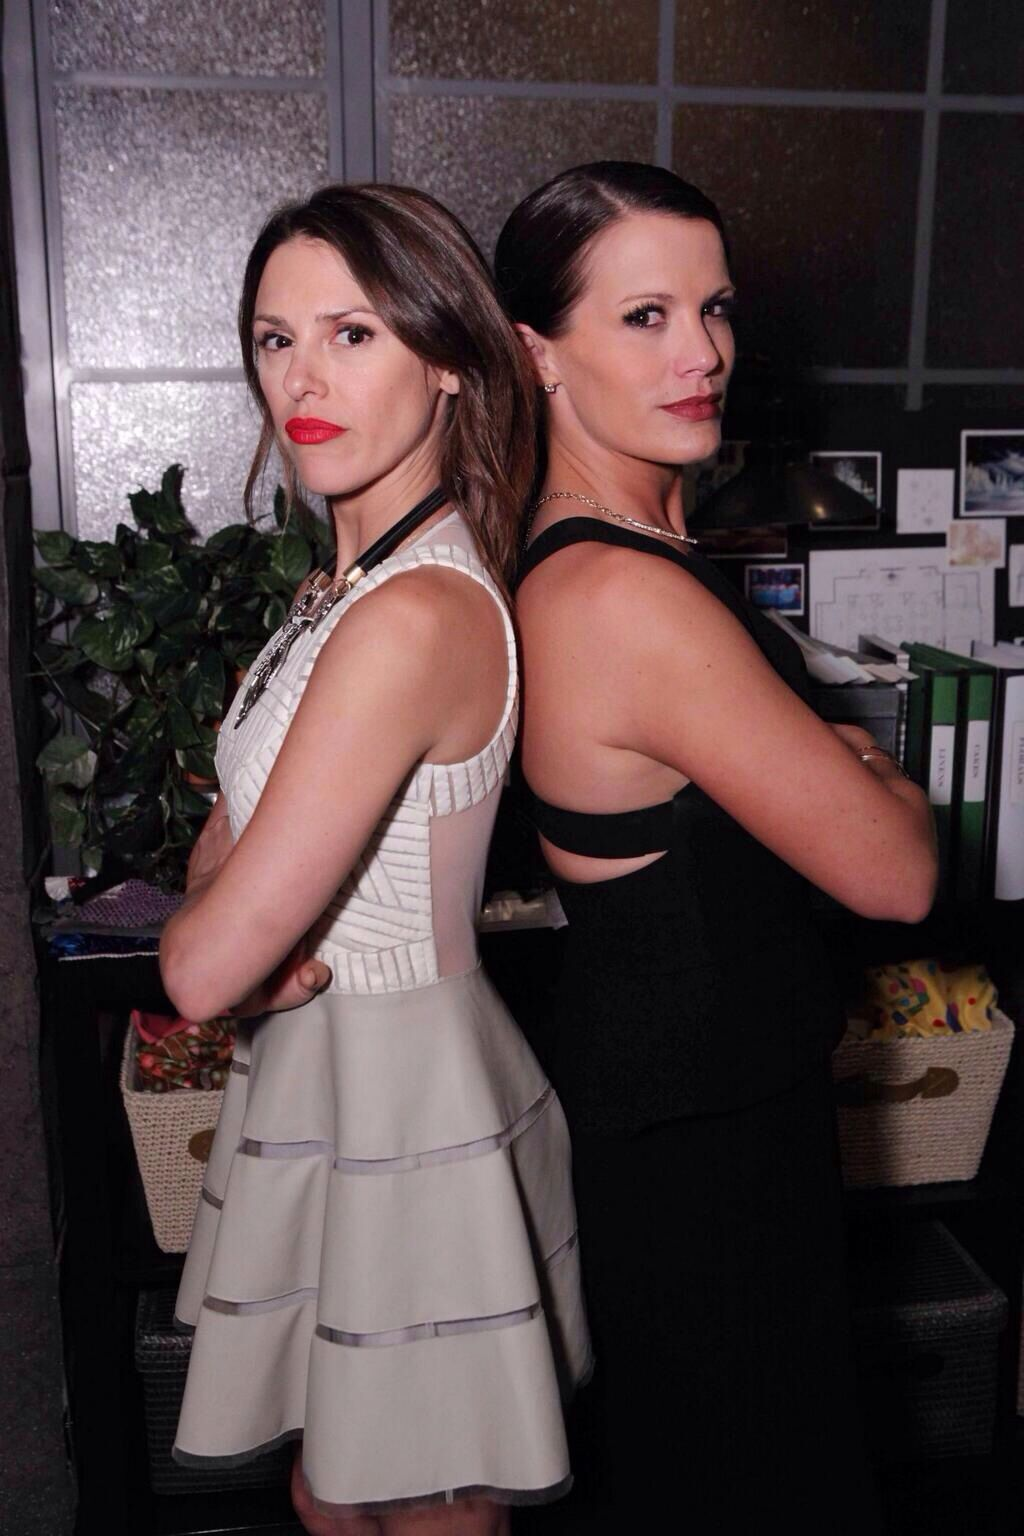 Chloe Chelsea From The Young And Restless Keep Scissors Away Form Chloe Young And The Restless Elizabeth Hendrickson Guys And Girls